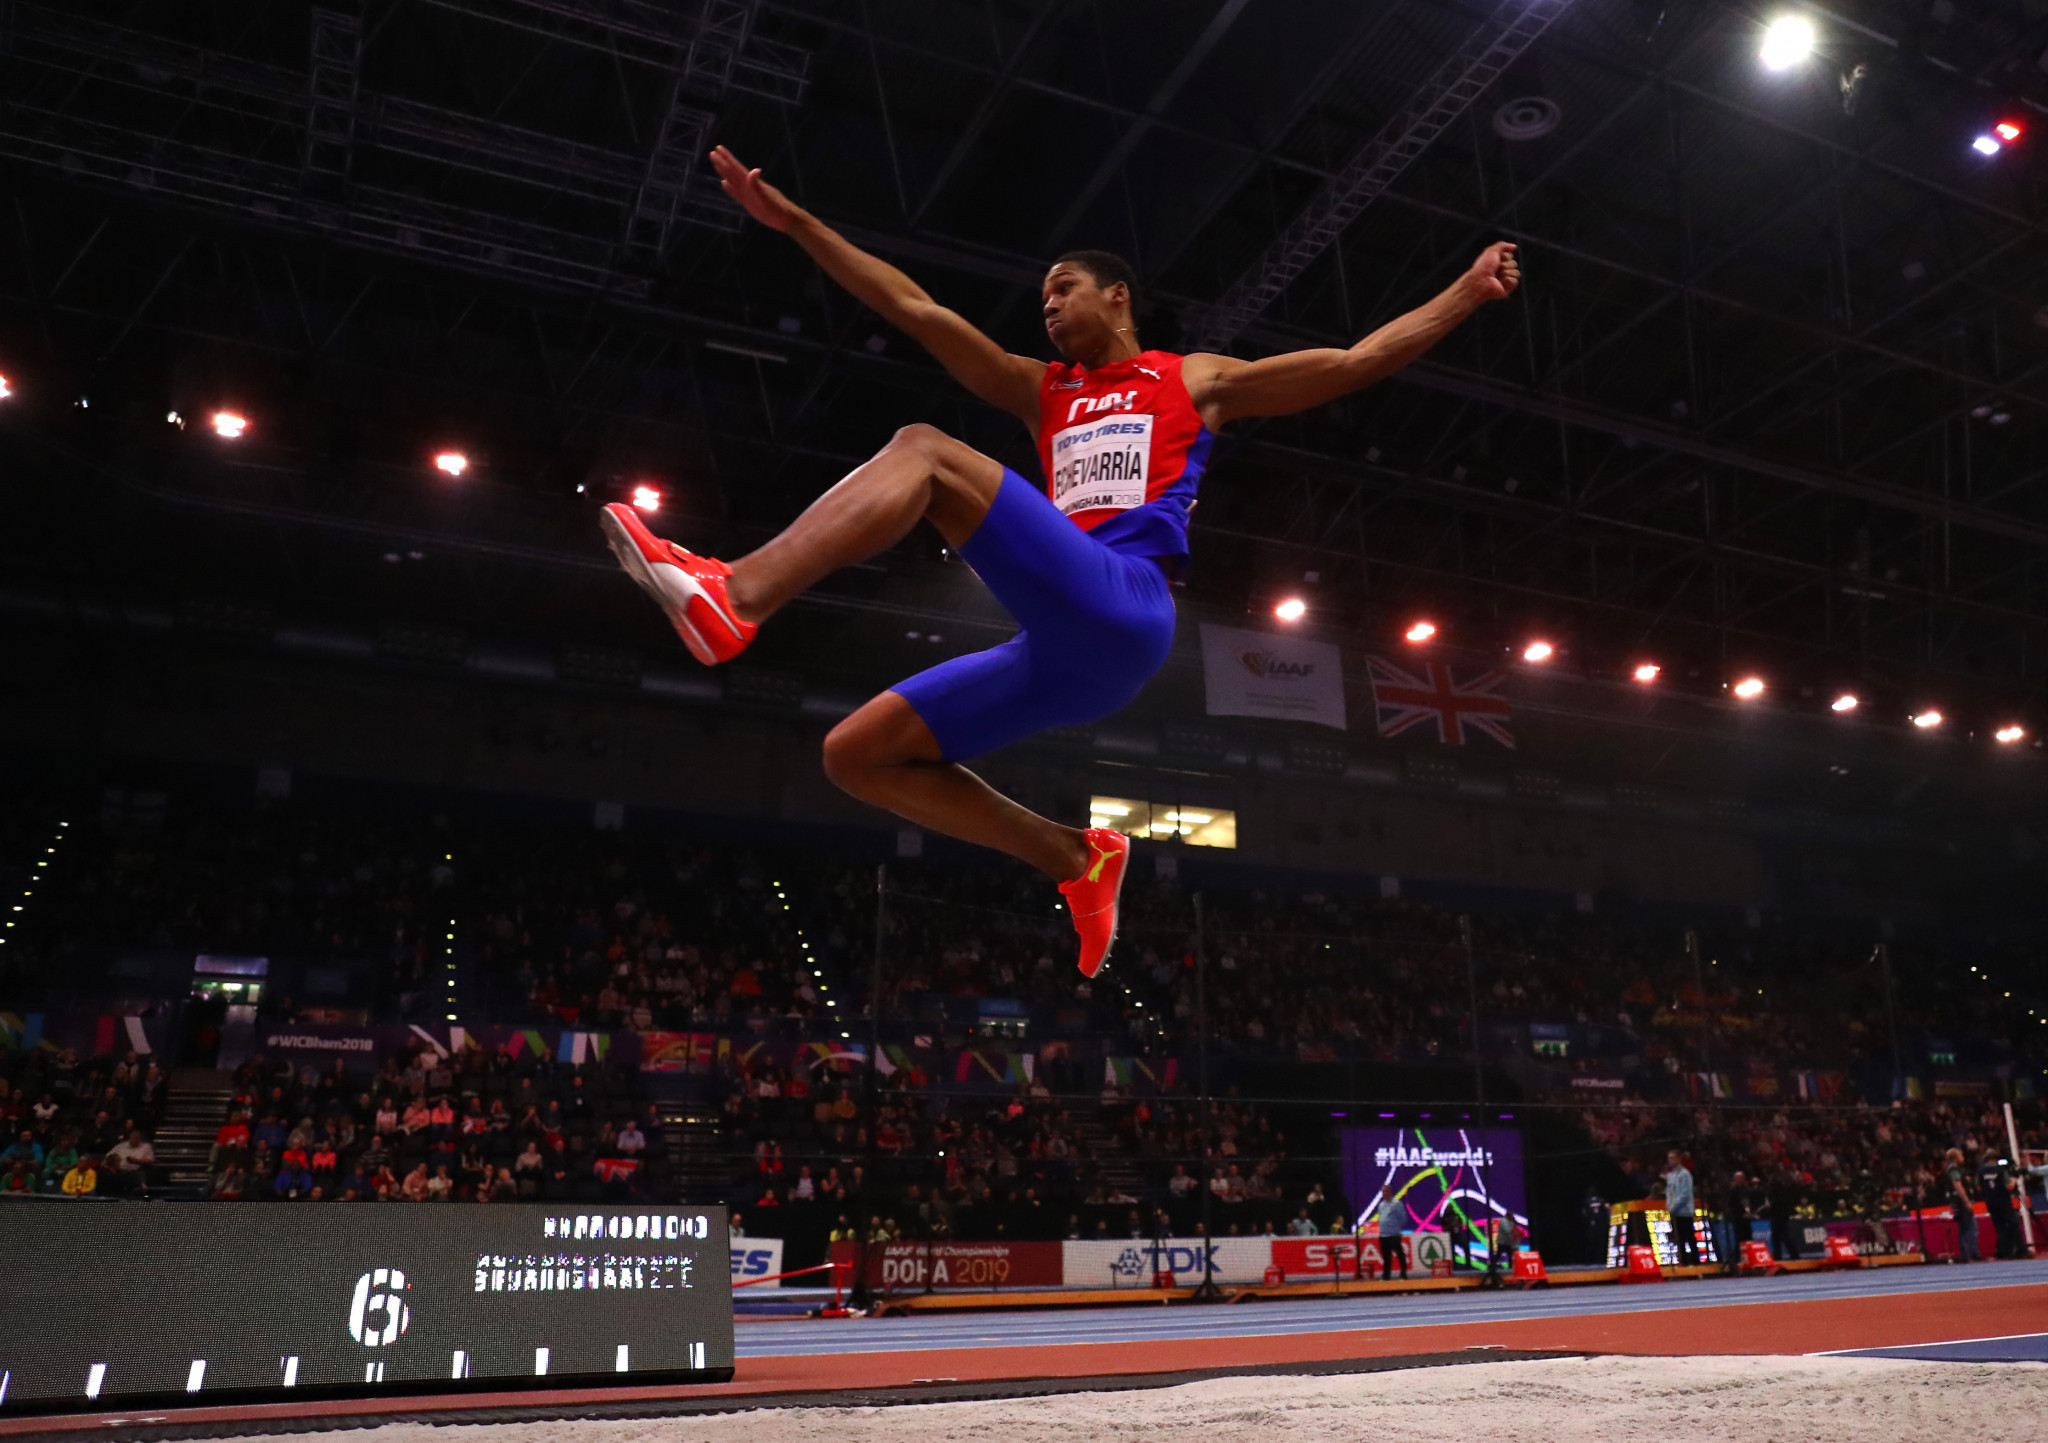 Echevarria loses men's long jump on count back at IAAF World Indoor Tour in Karlsruhe